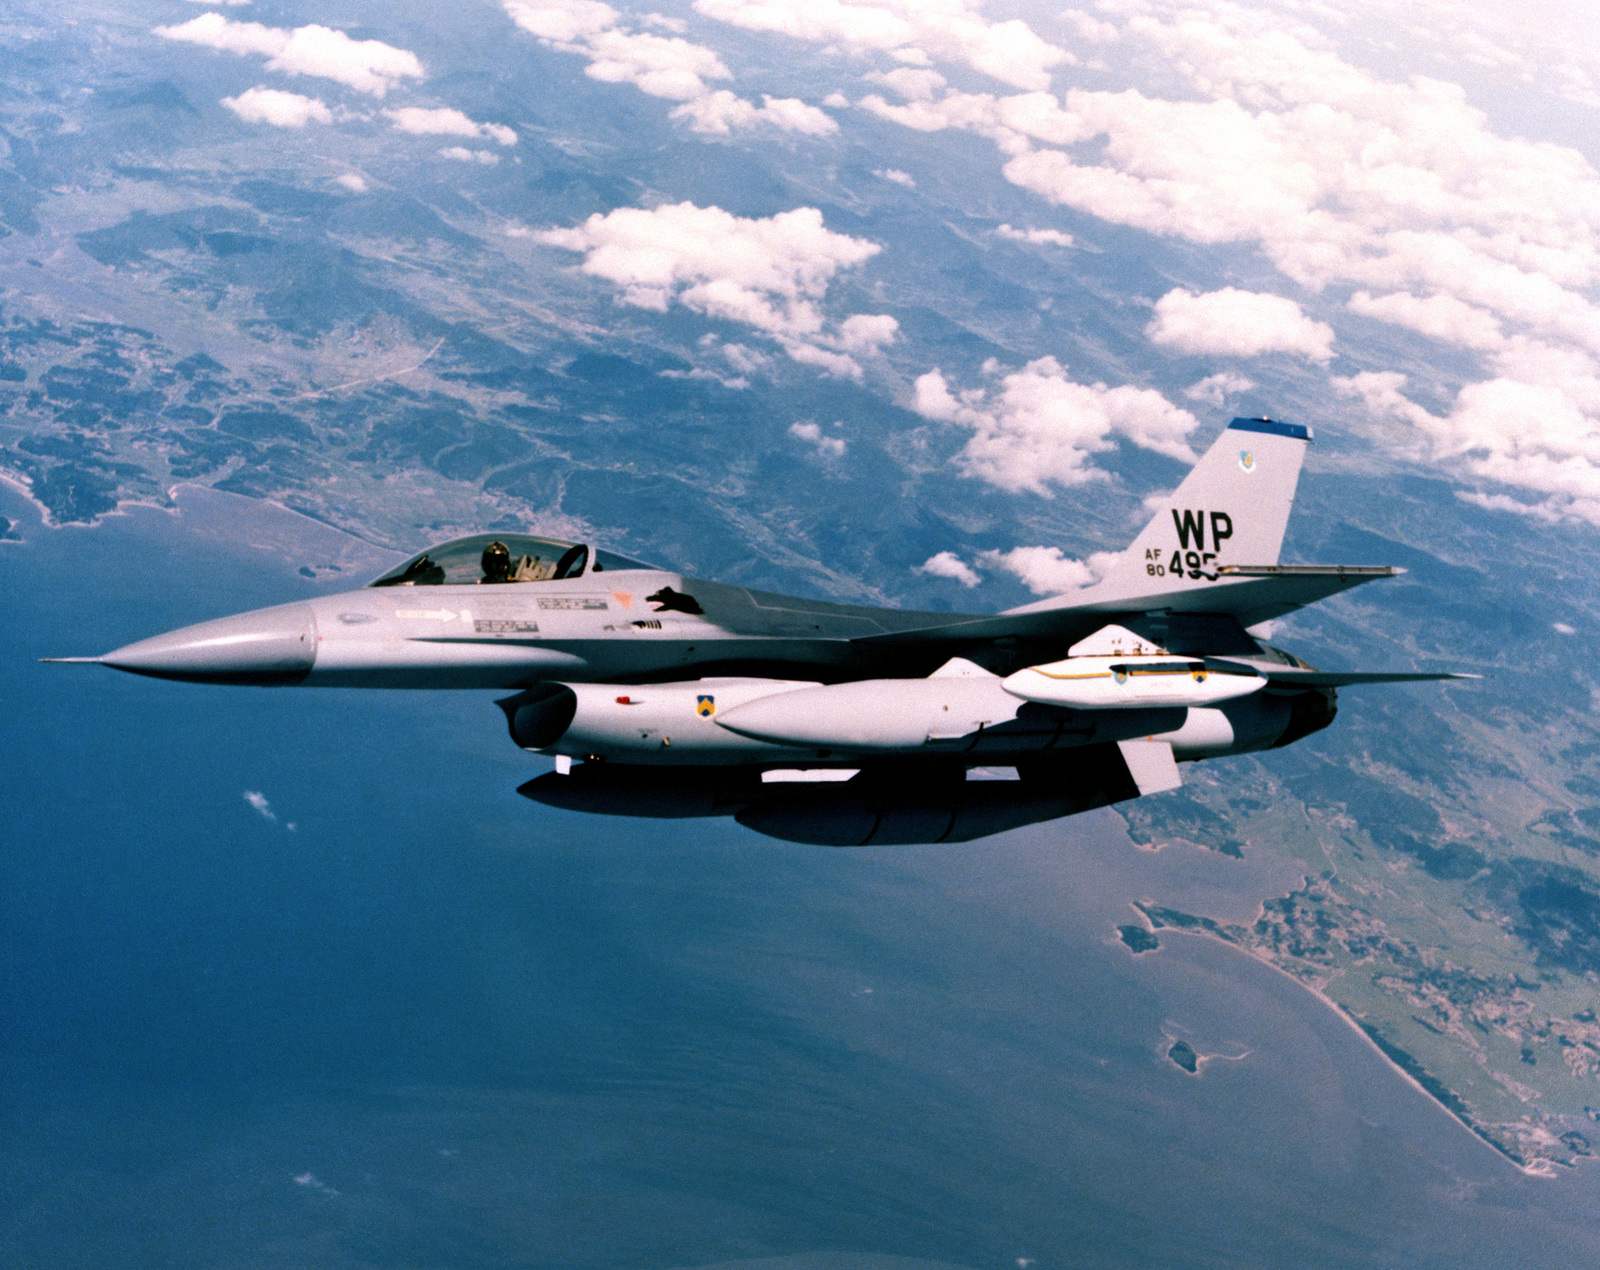 A view of an F-16A Fighting Falcon aircraft banking to the right during deployment to Kunsan Air Base, Korea. The aircraft is from the 35th Tactical Fighter Squadron, 8th Tactical Fighter Wing. The aircraft is equipped with a luggage pod on the left wing and auxiliary fuel tanks